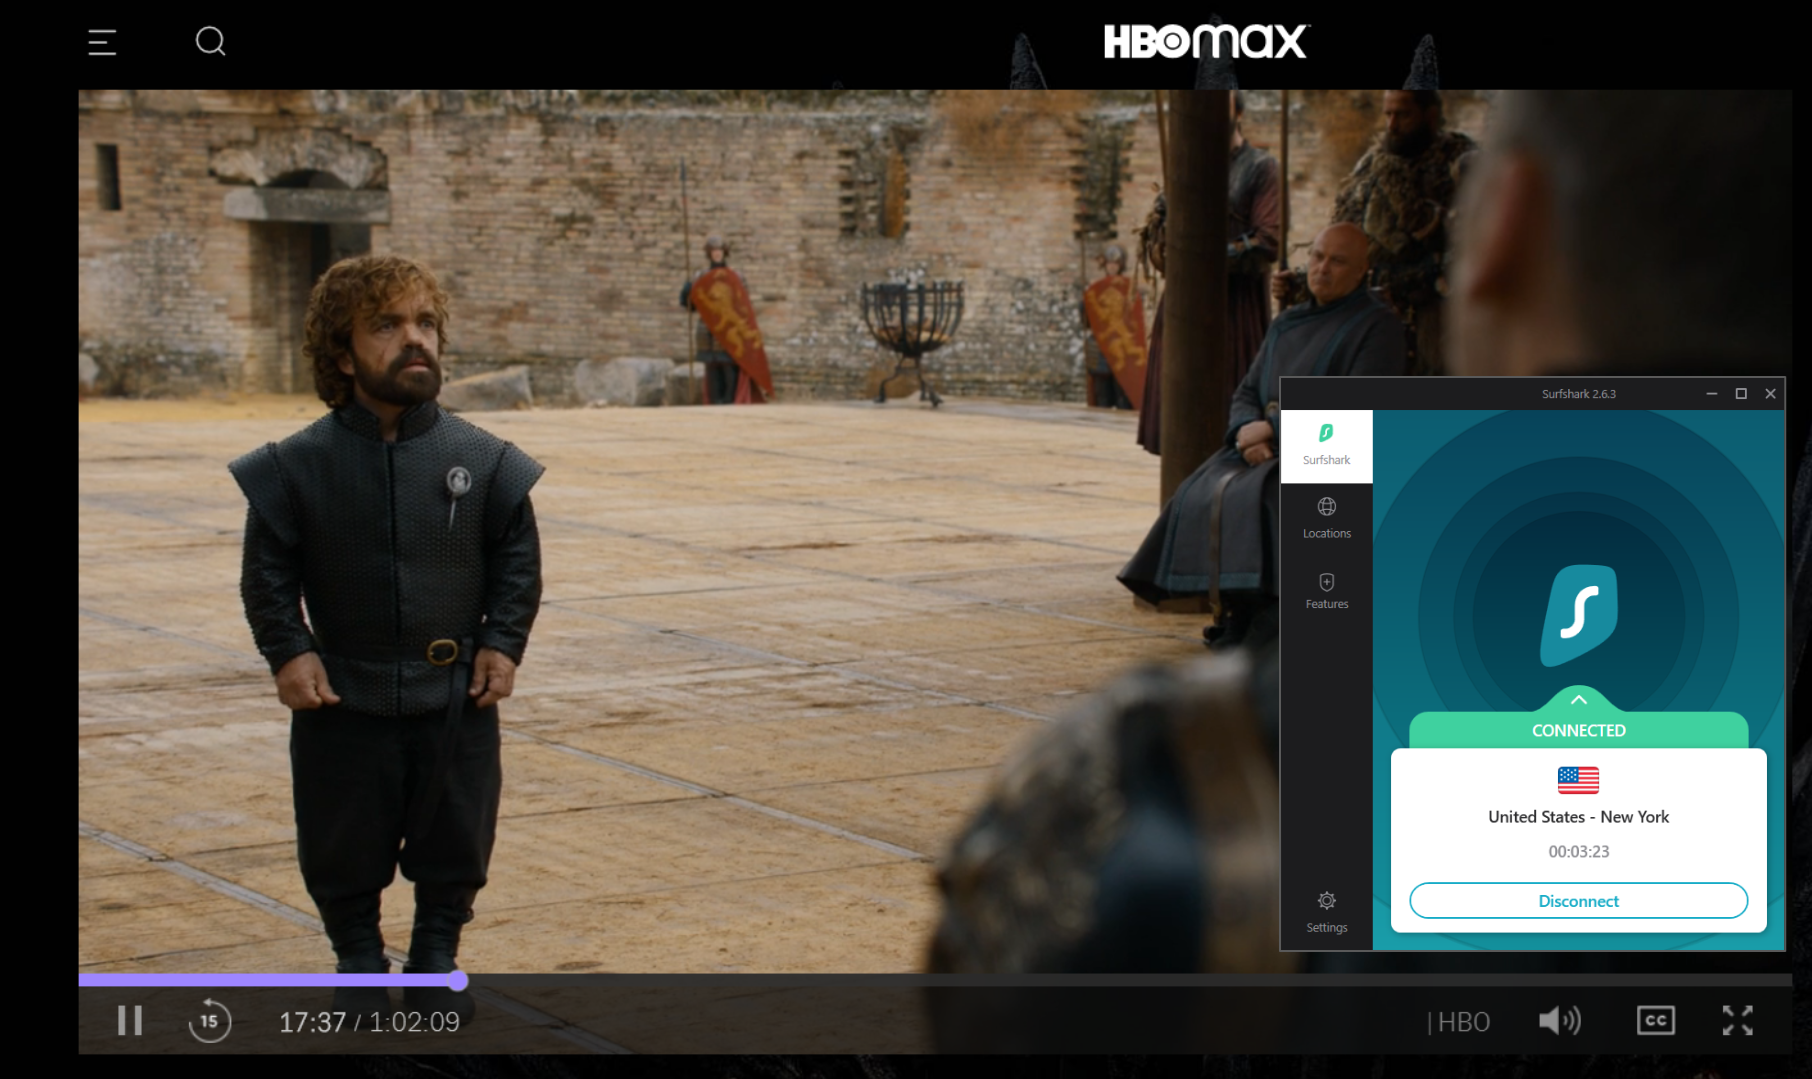 Captura de tela de Game of Thrones streaming no HBO Max e Surfshark conectado a um servidor dos EUA